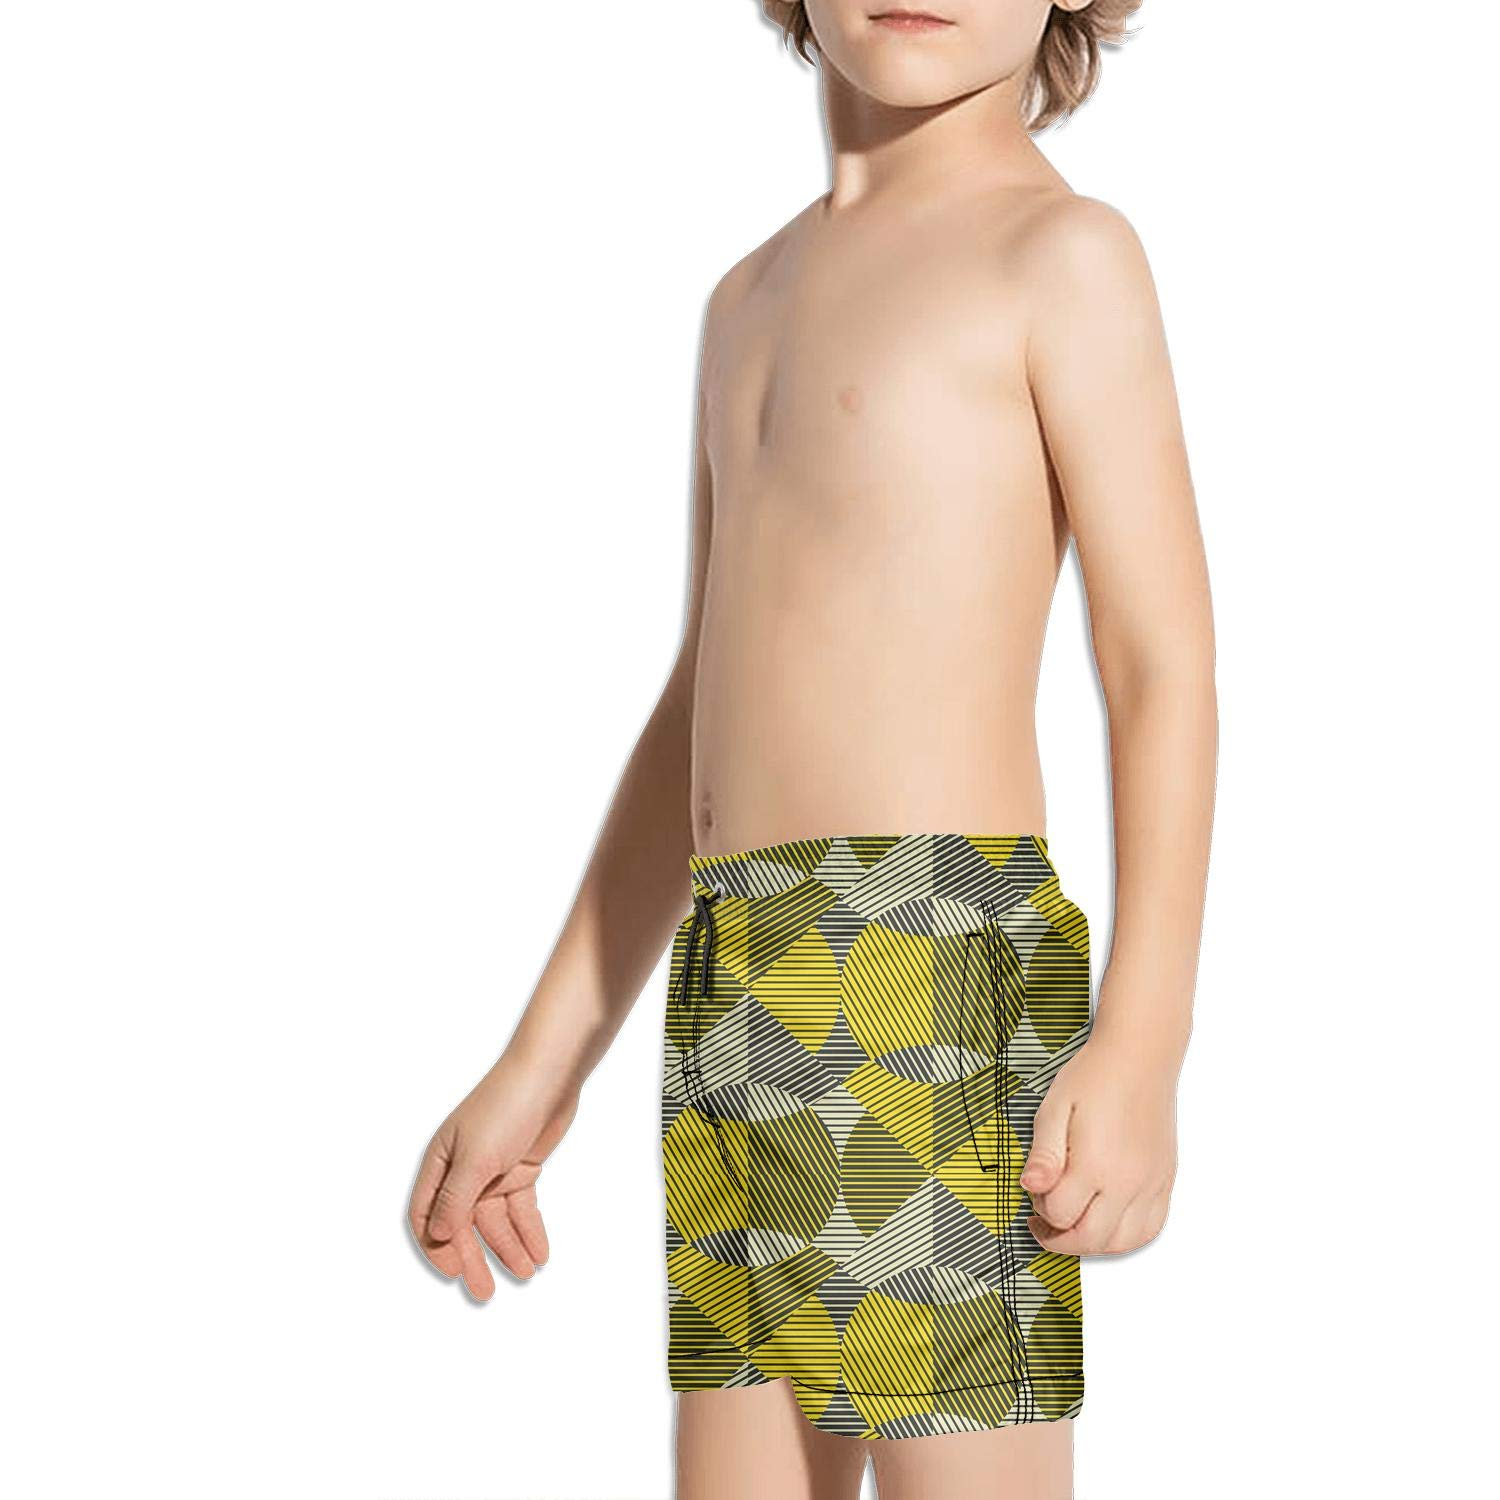 BingGuiC Boys Quick Dry Shorts Geometric Round Shapes Colorful Fashion Swim Trunks